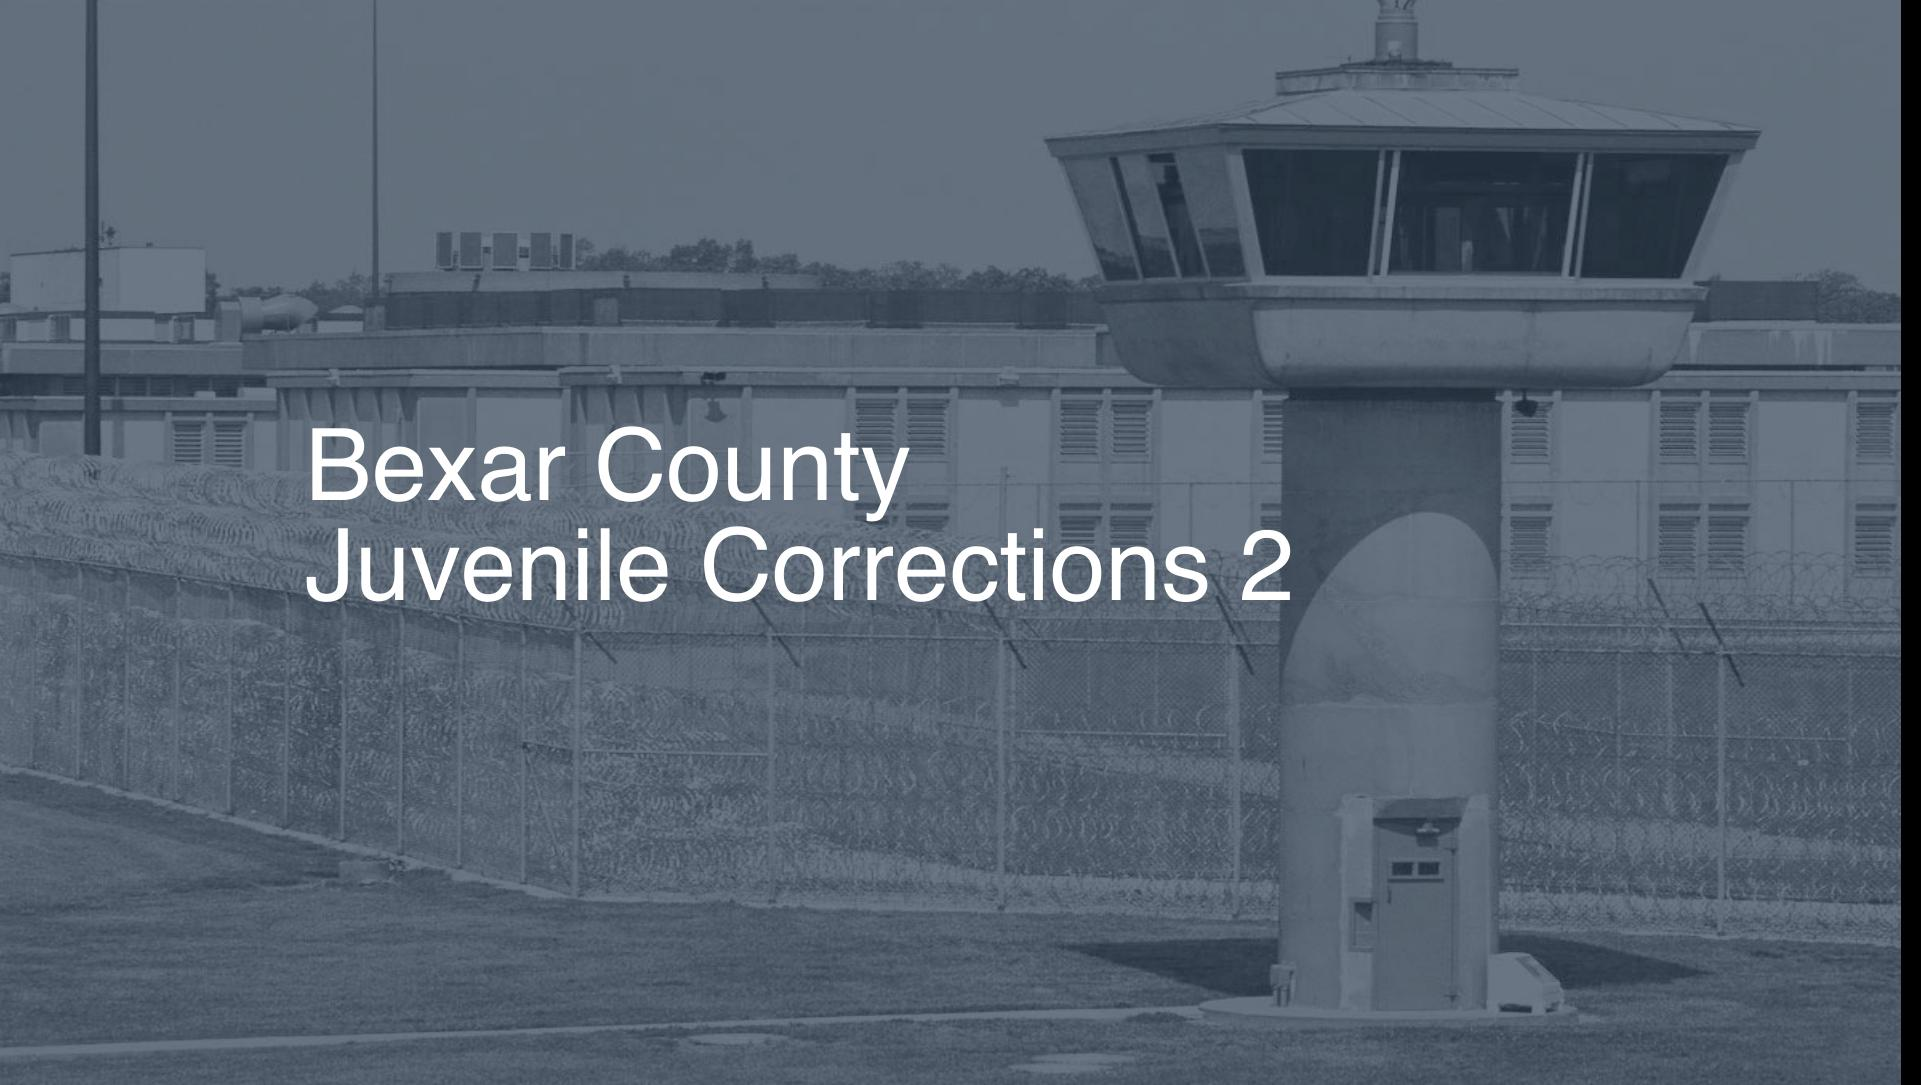 Bexar County Juvenile Corrections Inmate Search, Lookup & Services